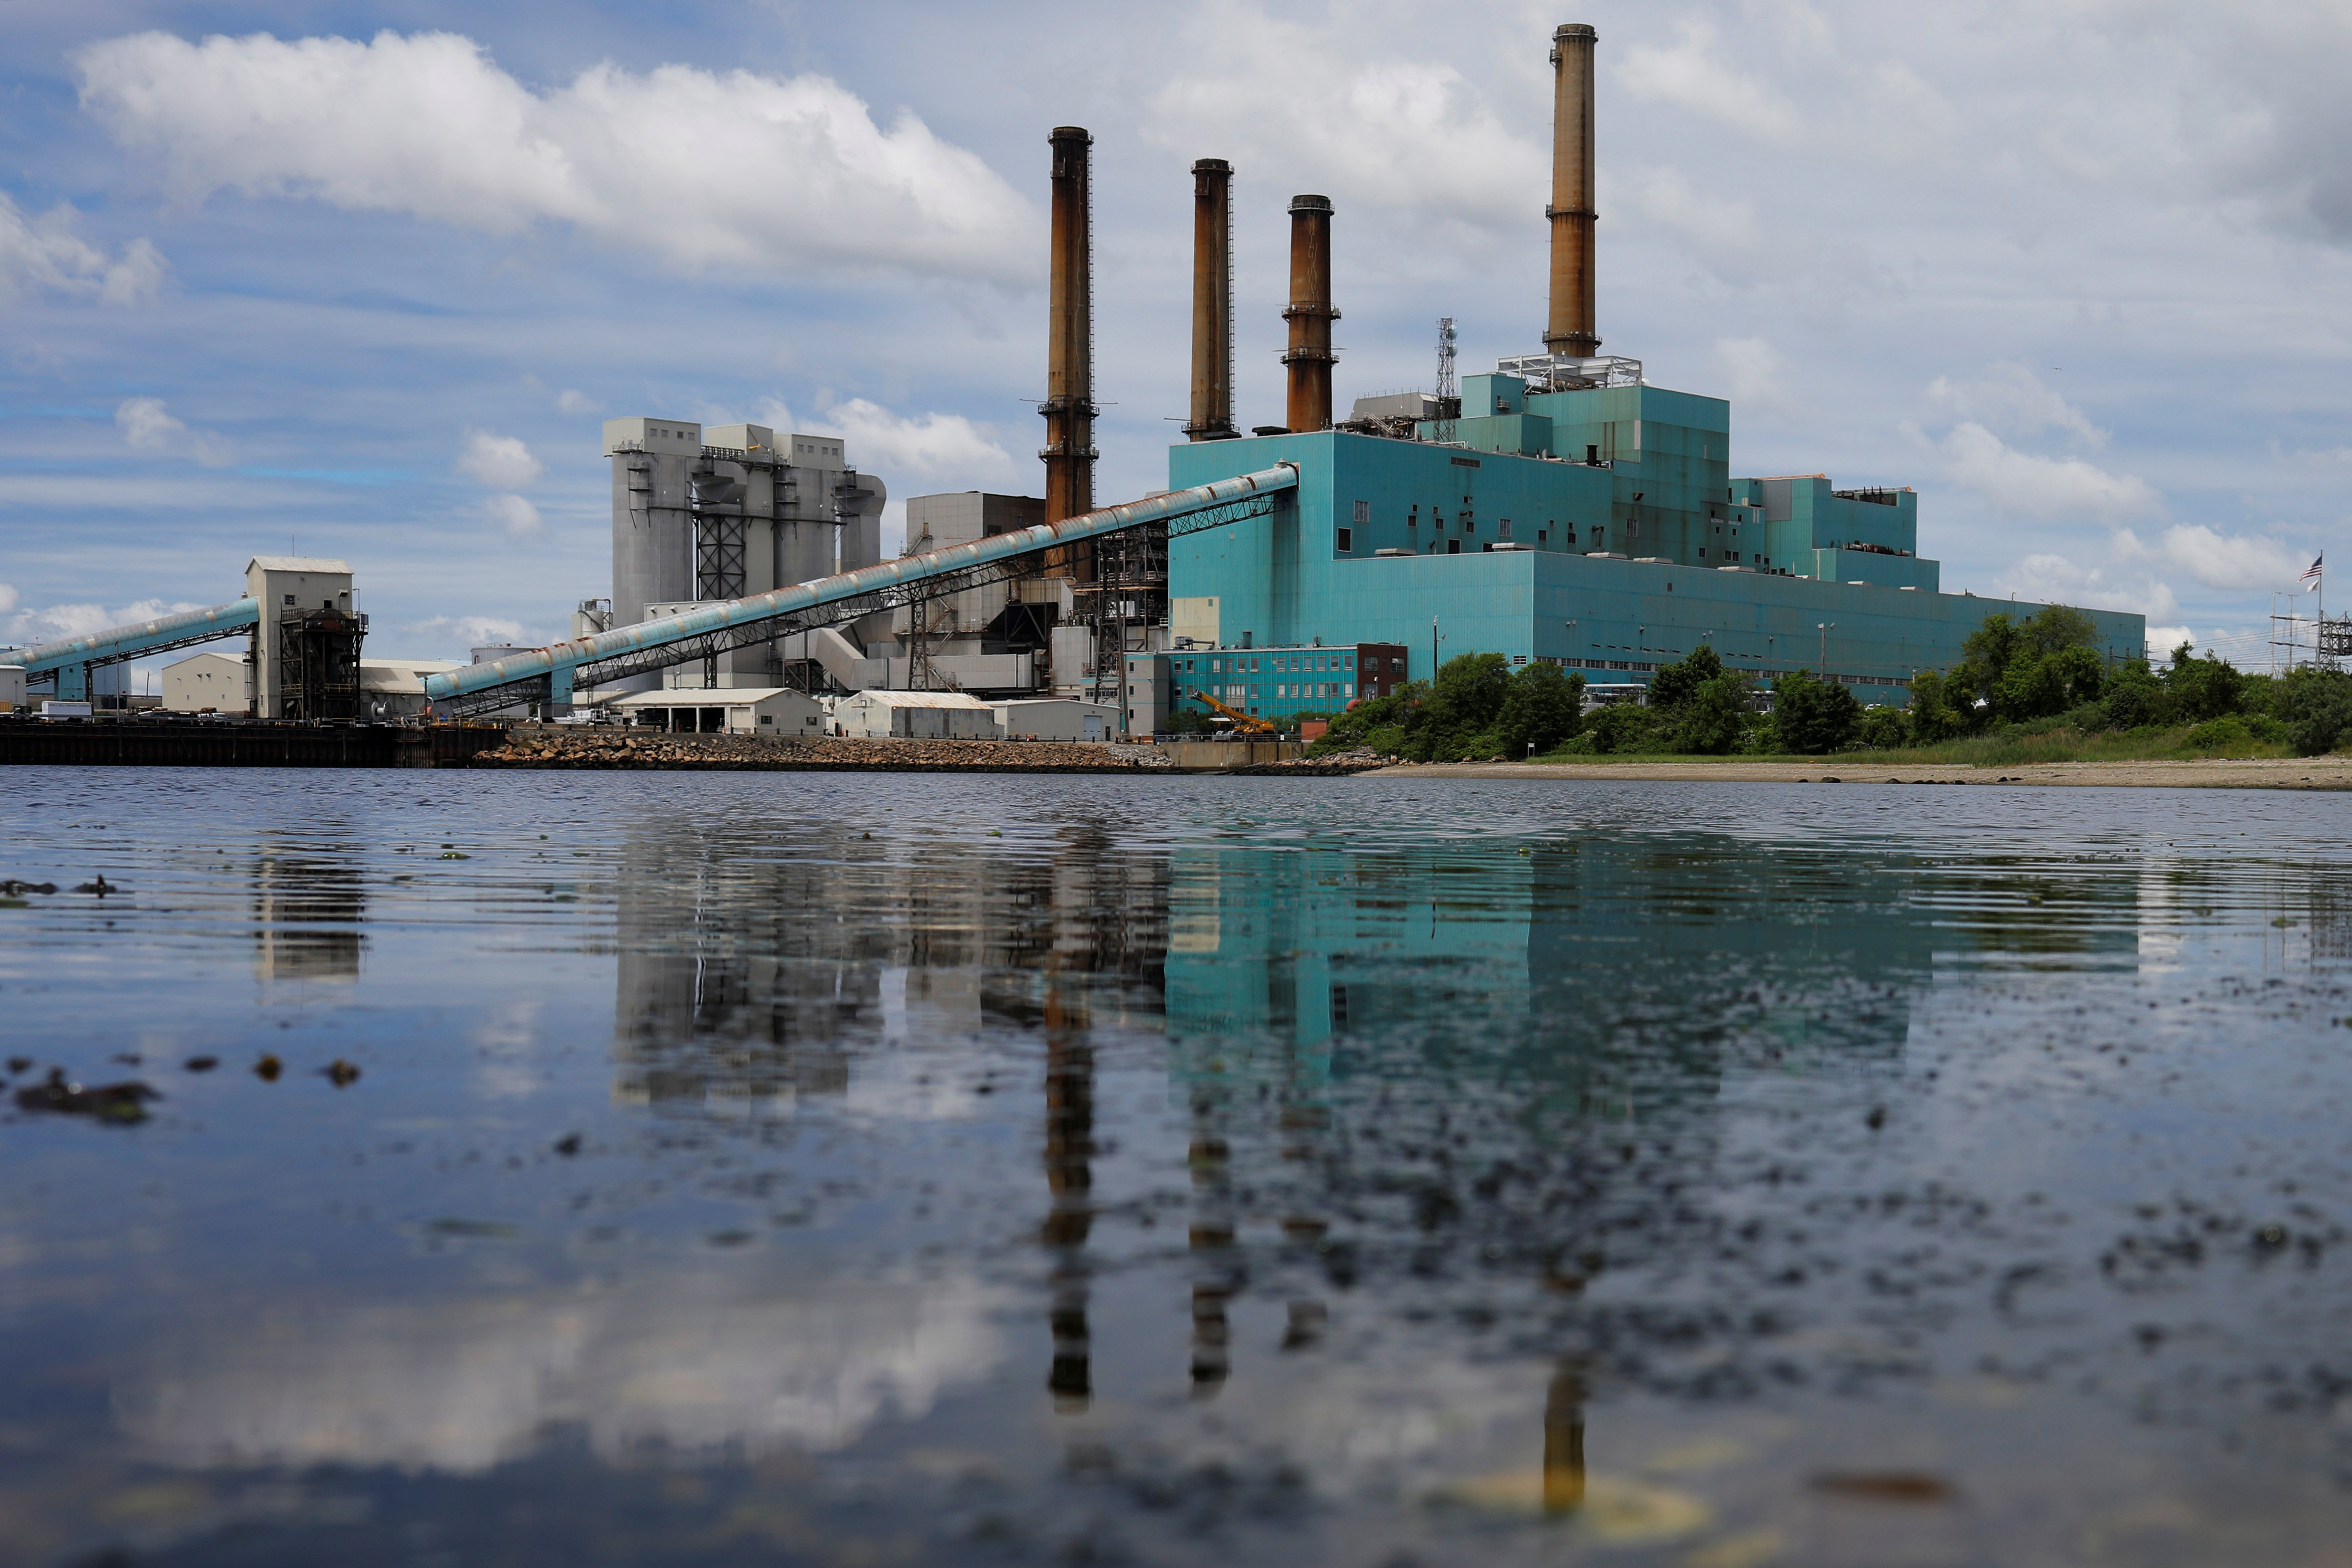 The Brayton Point power plant, a coal fired power plant which was shut down on June 1, sits near the Taunton River in Somerset